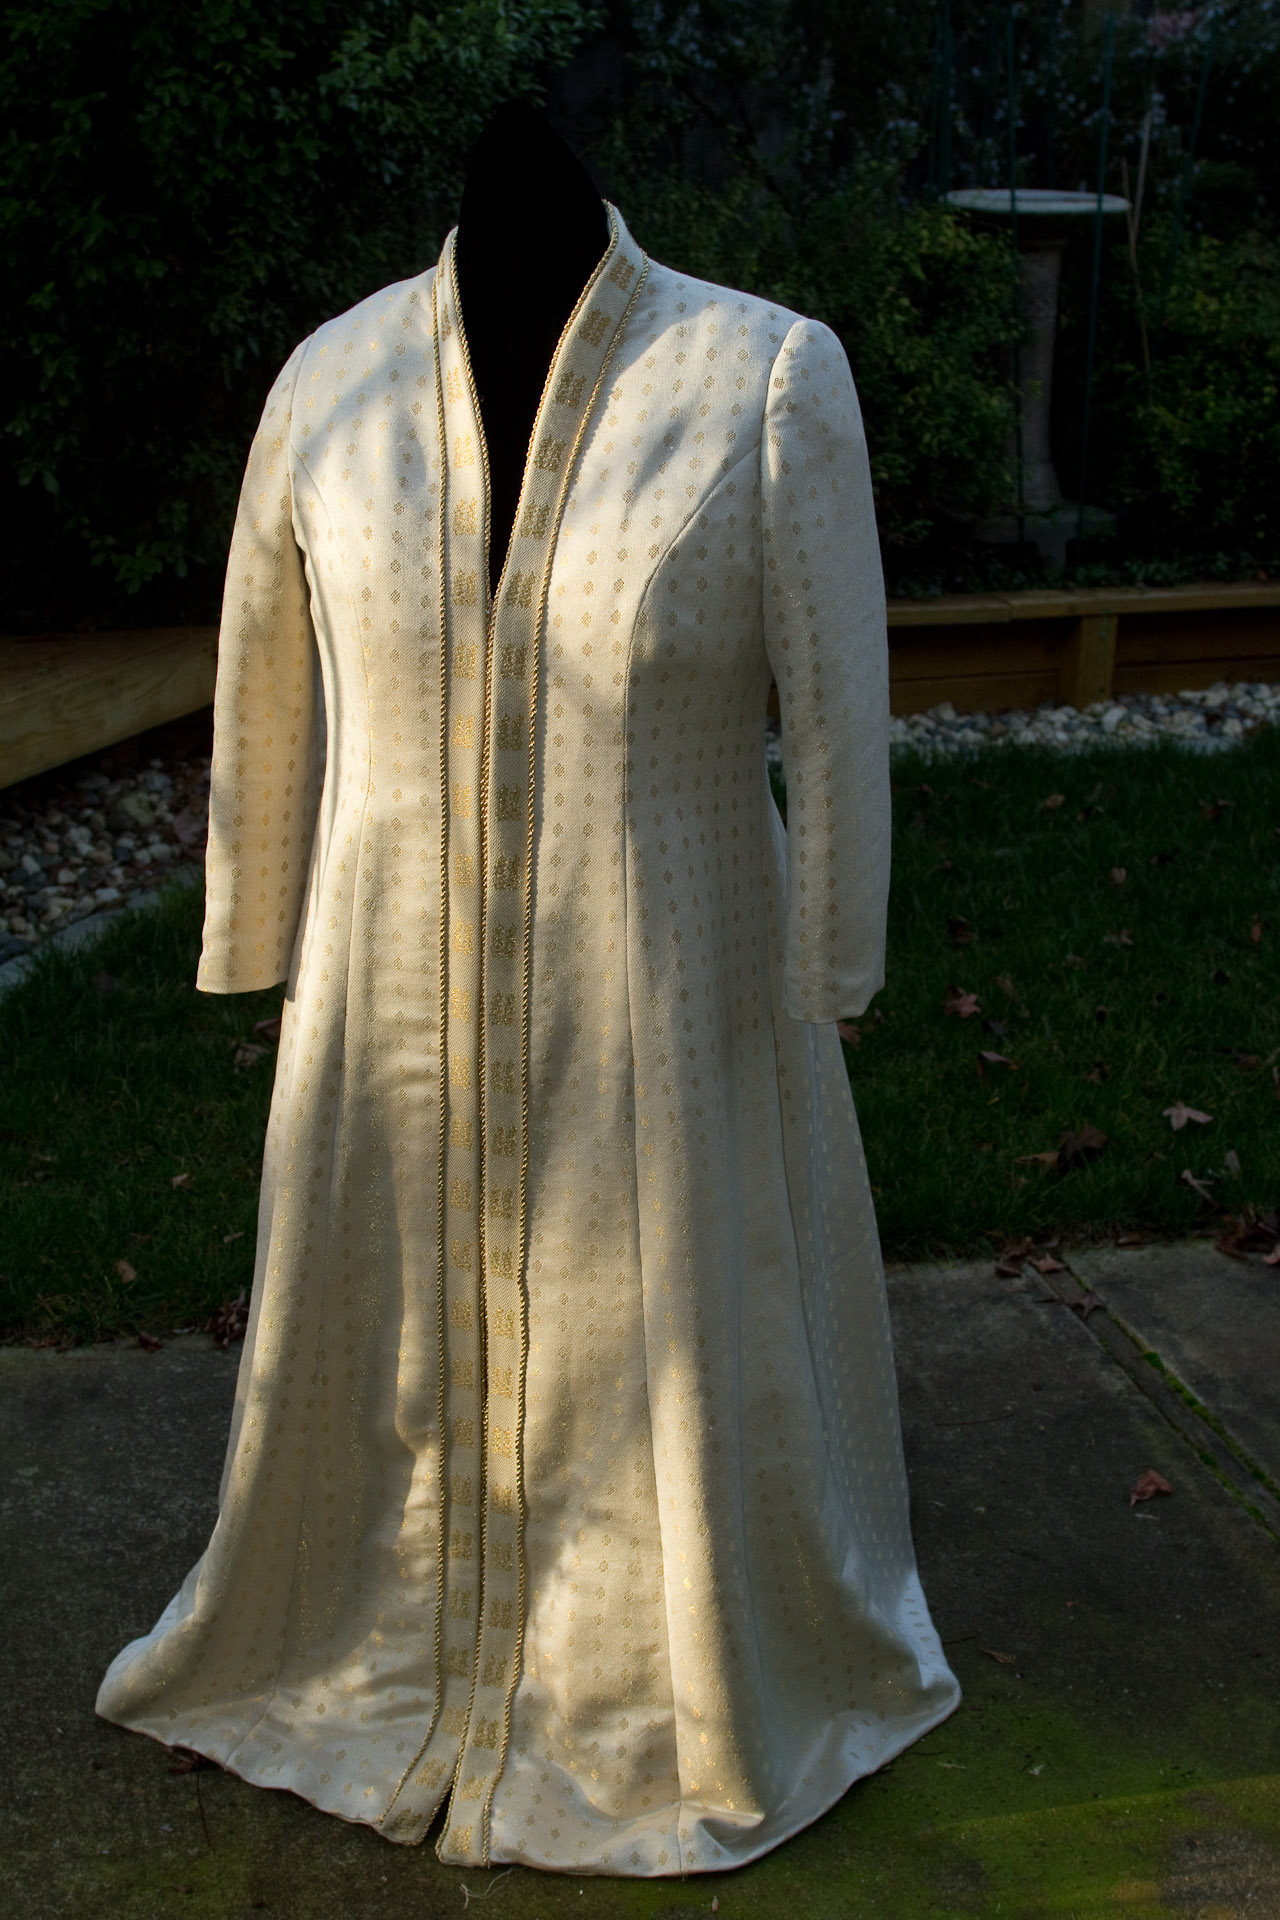 Handwoven wedding coat, draped over dress form